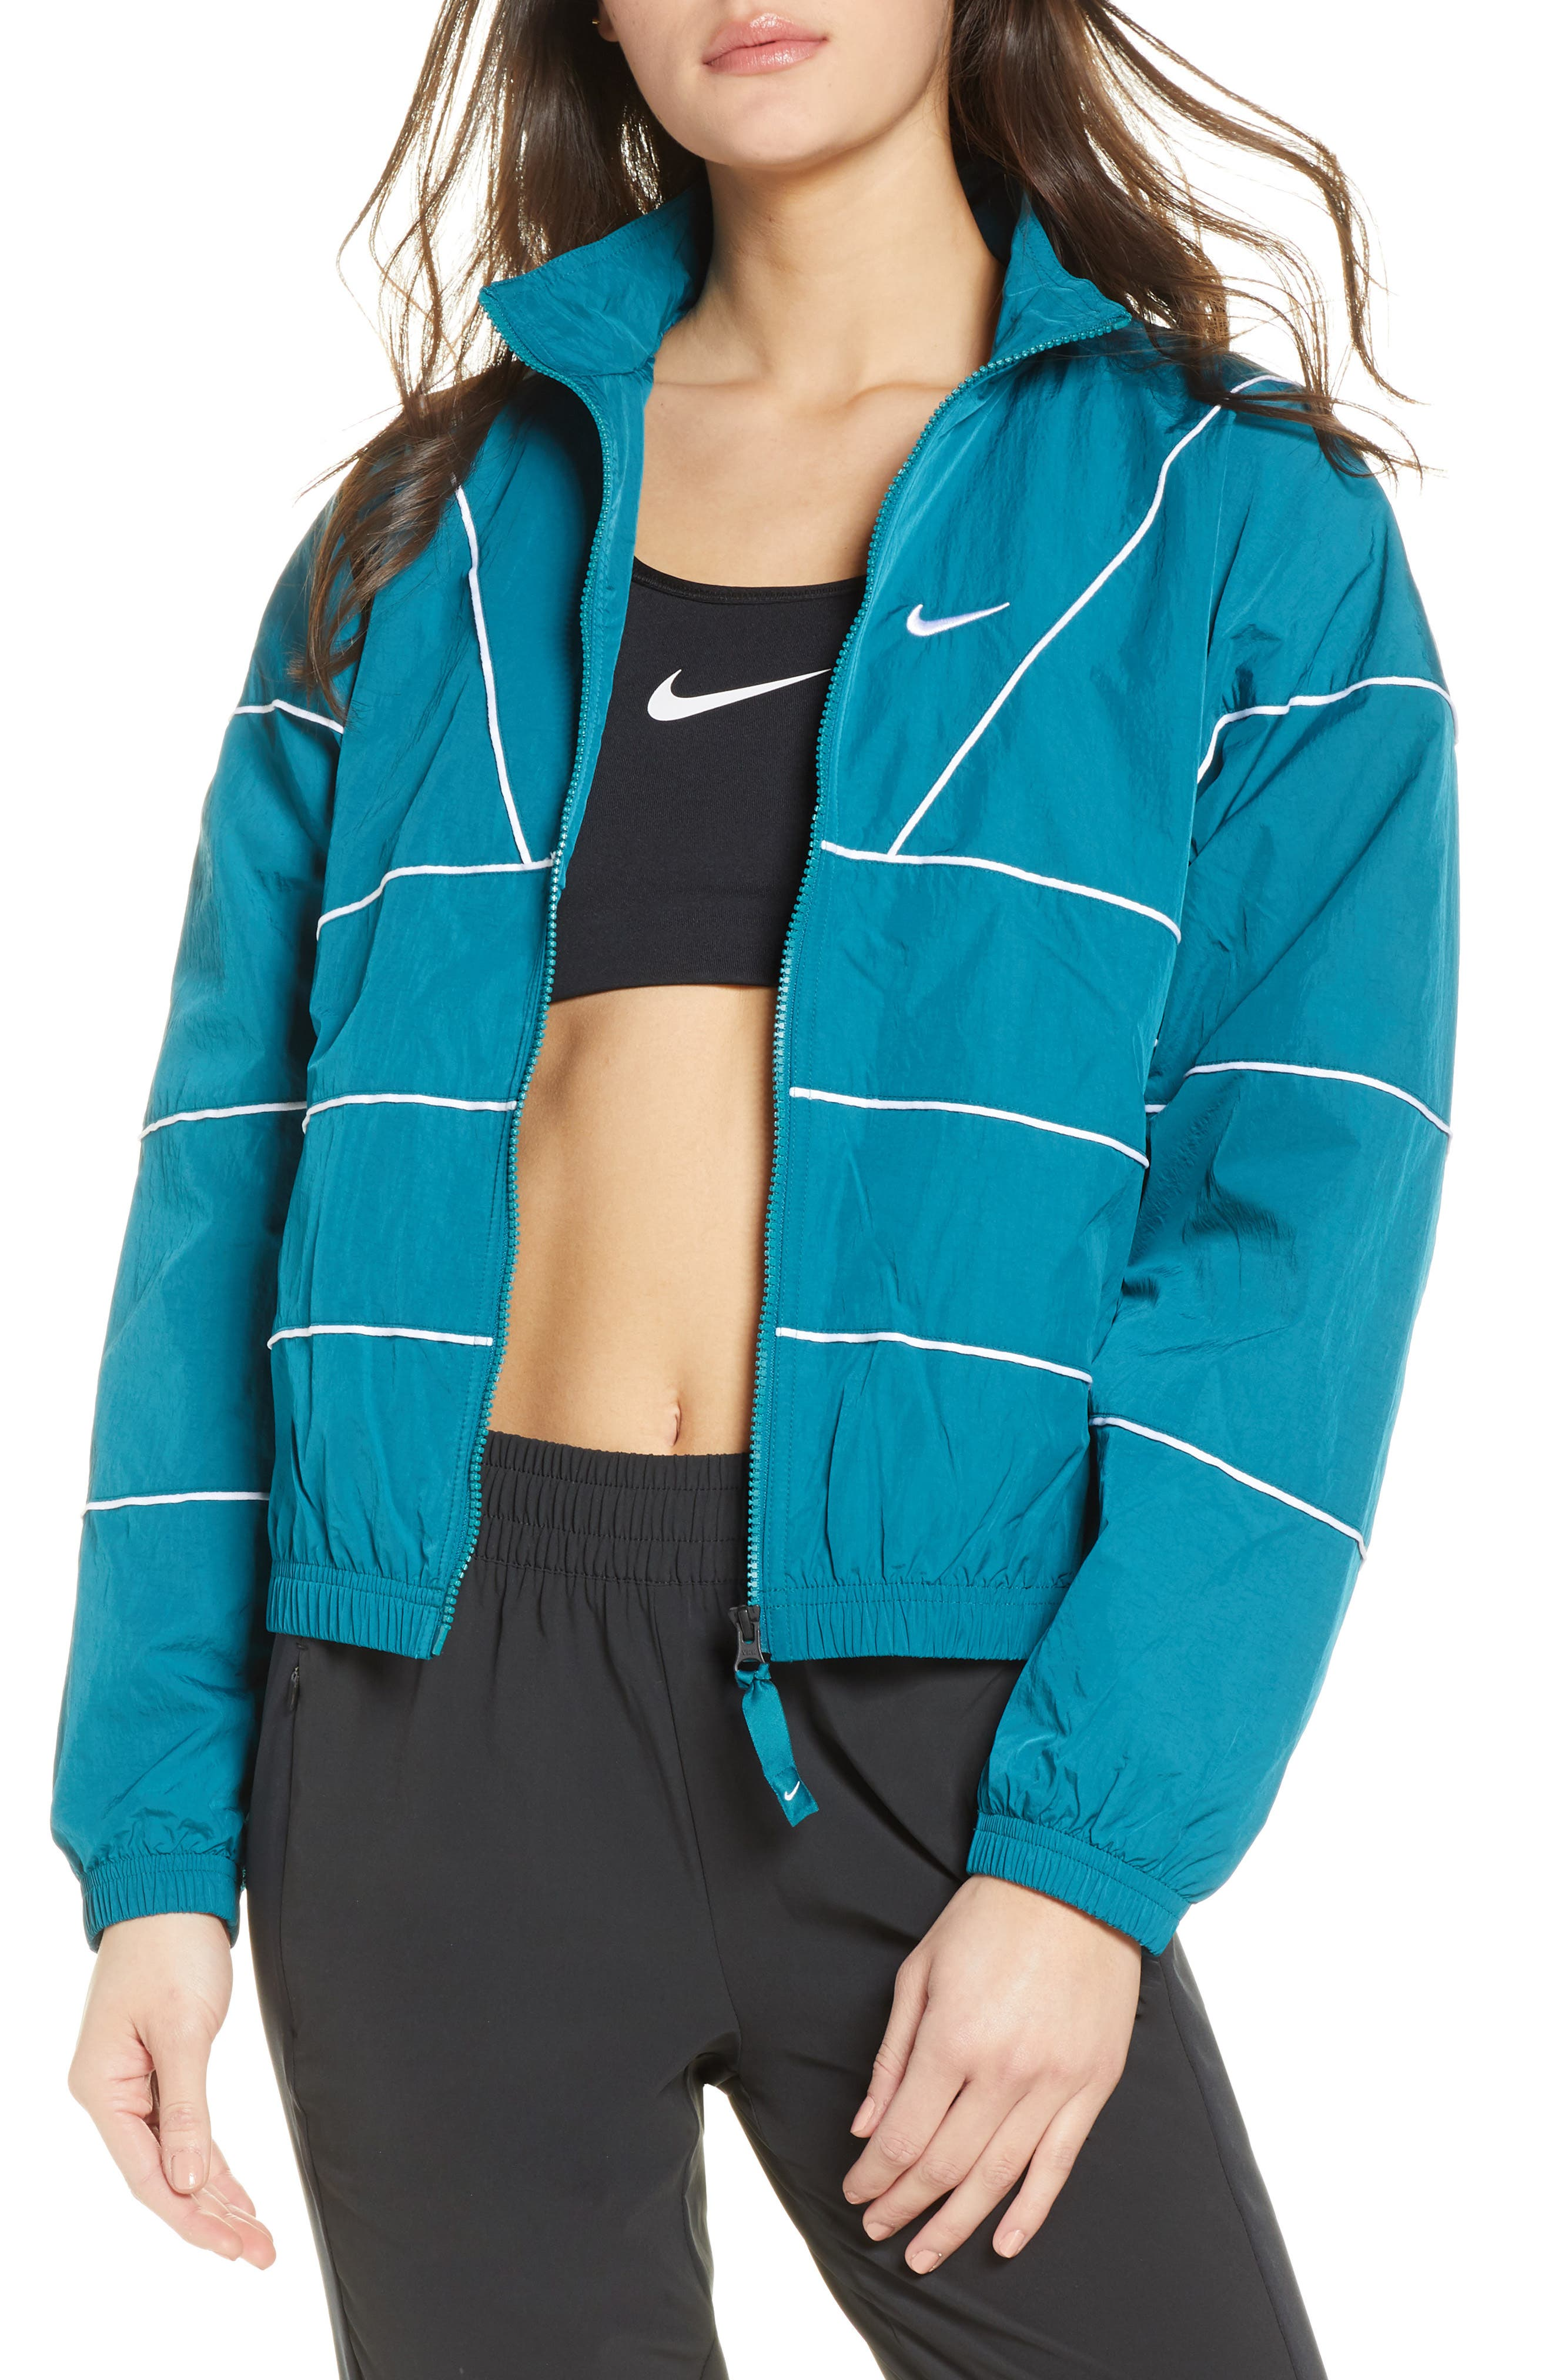 Throwing back to vintage track designs, this soft nylon jacket has contrast binding and reflective details so everyone can clearly see your cool look. A mesh lining ensures comfortable breathability, while the elastic cuffs and hem keep in warmth. Style Name: Nike Women\'s Track Jacket. Style Number: 5958096. Available in stores.